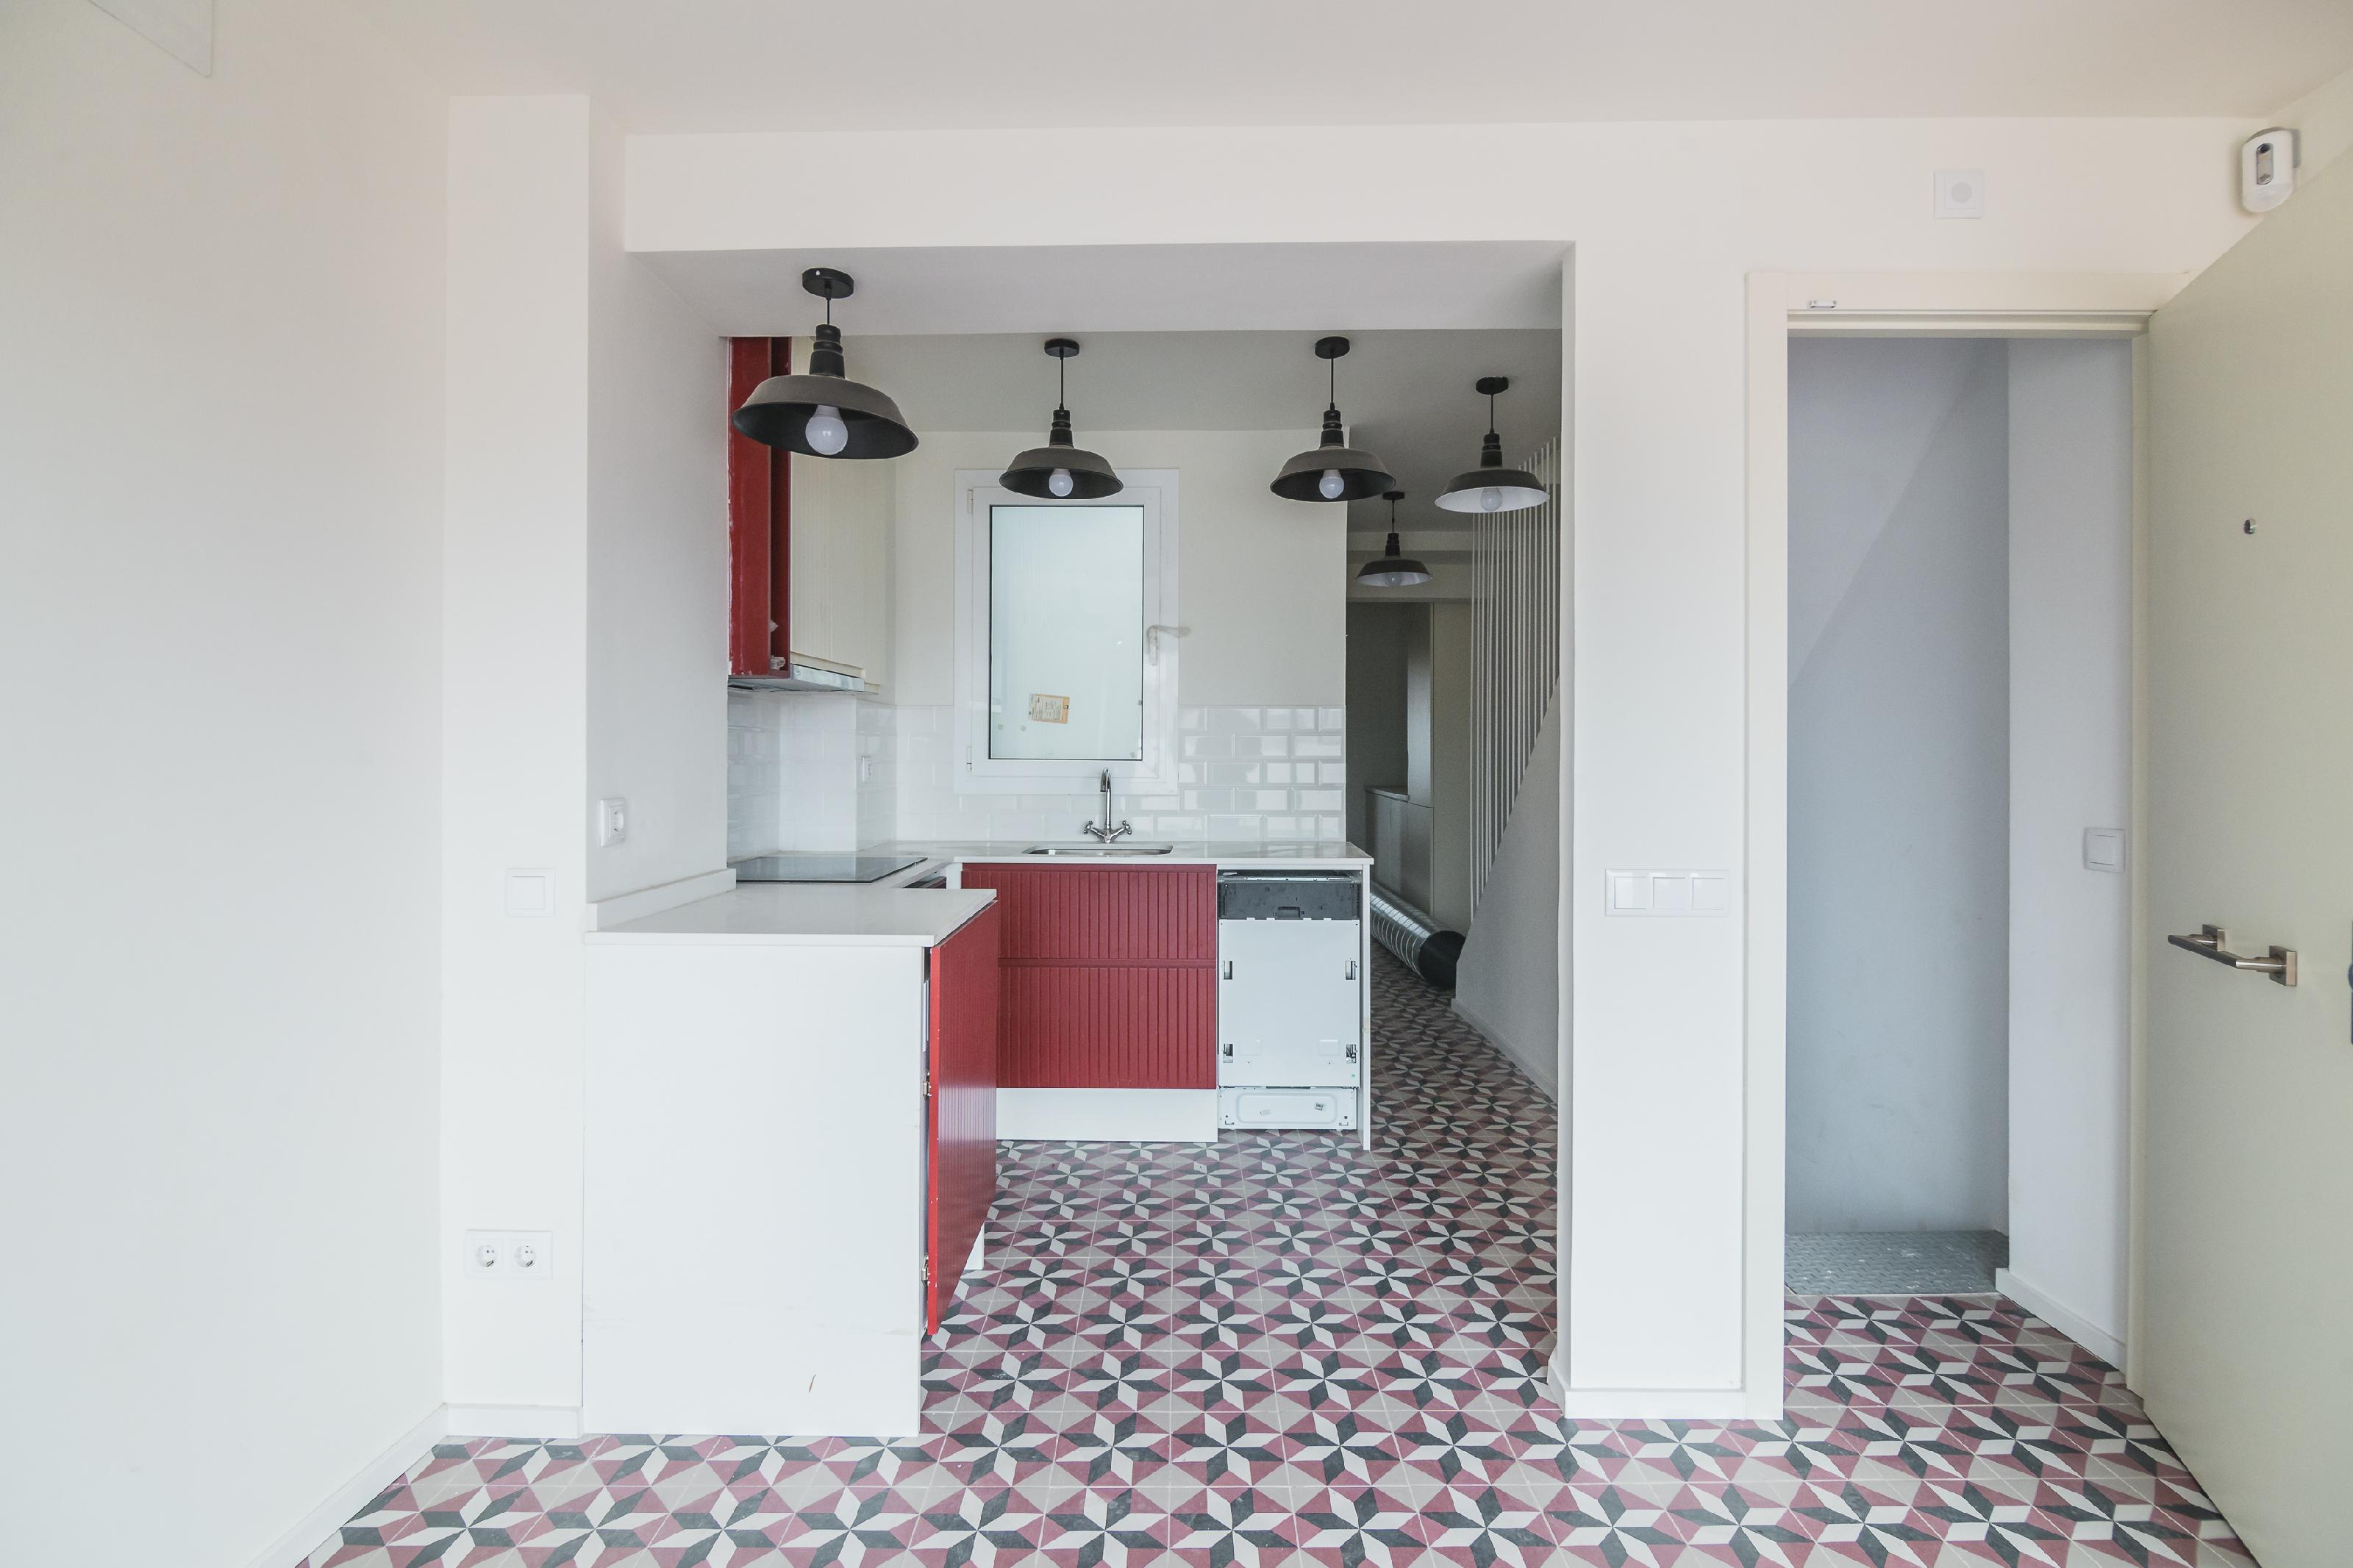 237520 Flat for sale in Ciutat Vella, St. Pere St. Caterina and La Ribera 22